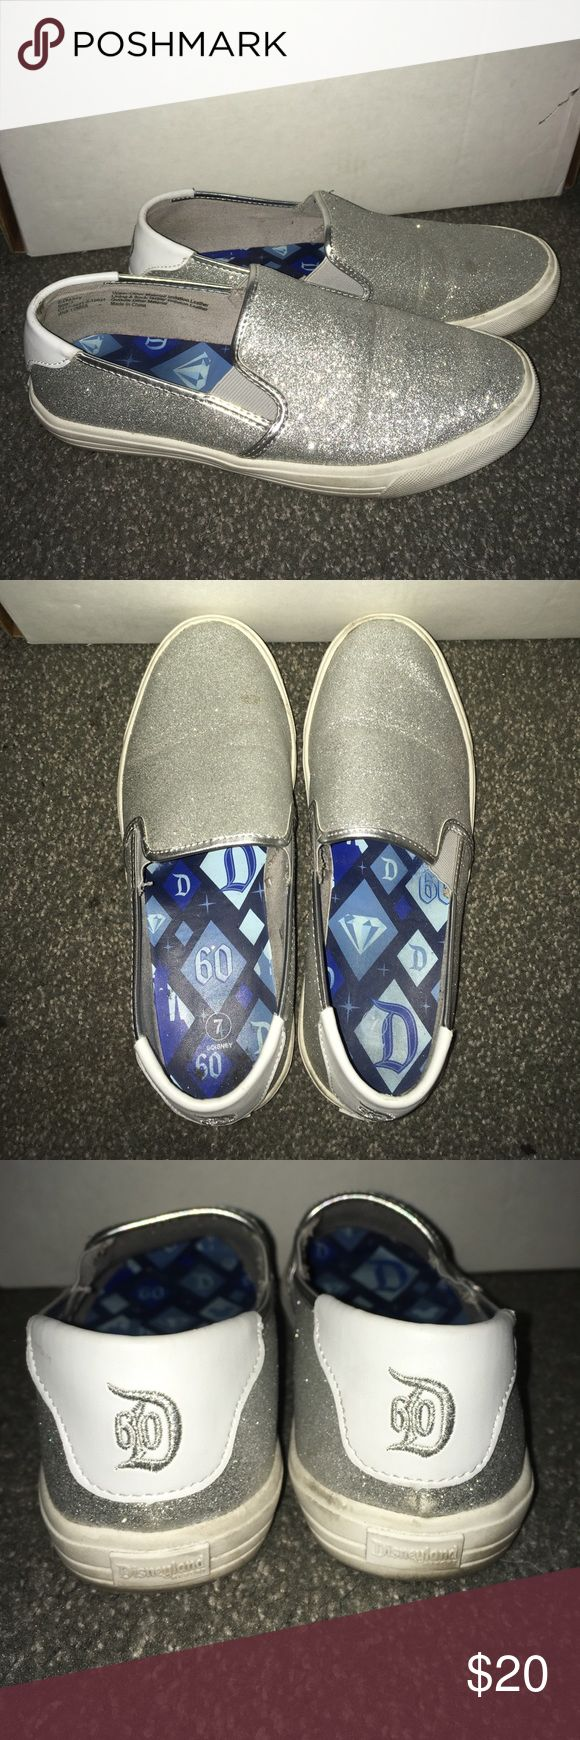 Disneyland 60th Silver Glitter shoes Silver Glitter Slip on shoes from Disneyland during the 60th anniversary. Worn once, at Disneyland when my shoes broke. Disney Shoes Sneakers